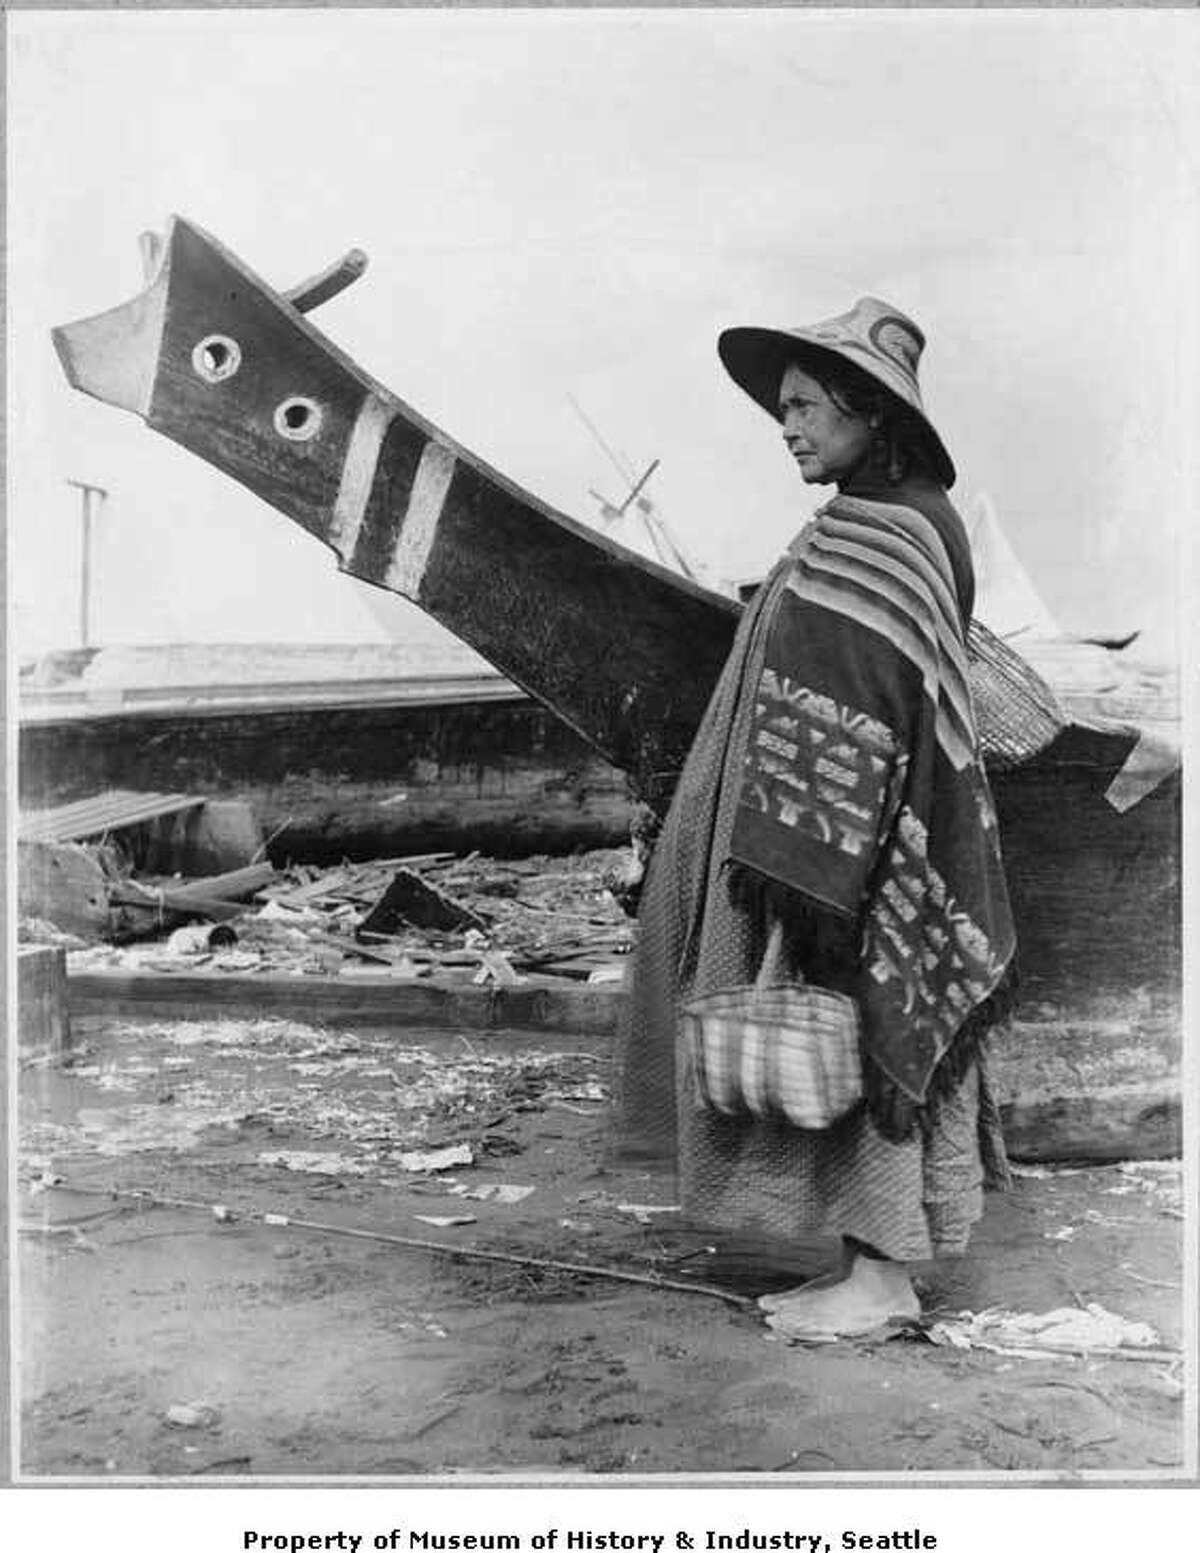 """""""Native people from many parts of the Northwest Coast came to Seattle to trade and buy supplies. In this 1898 photo by O.P. Anderson, a Native American woman stands by a canoe at the Seattle waterfront. The tall prow of the canoe and the design of her hat suggest that she is from Vancouver Island or some other part of coastal Canada. The photo was taken two blocks south of King Street, near First Avenue."""" -MOHAI. Photo courtesy MOHAI, Seattle Historical Society Collection, image number shs321."""